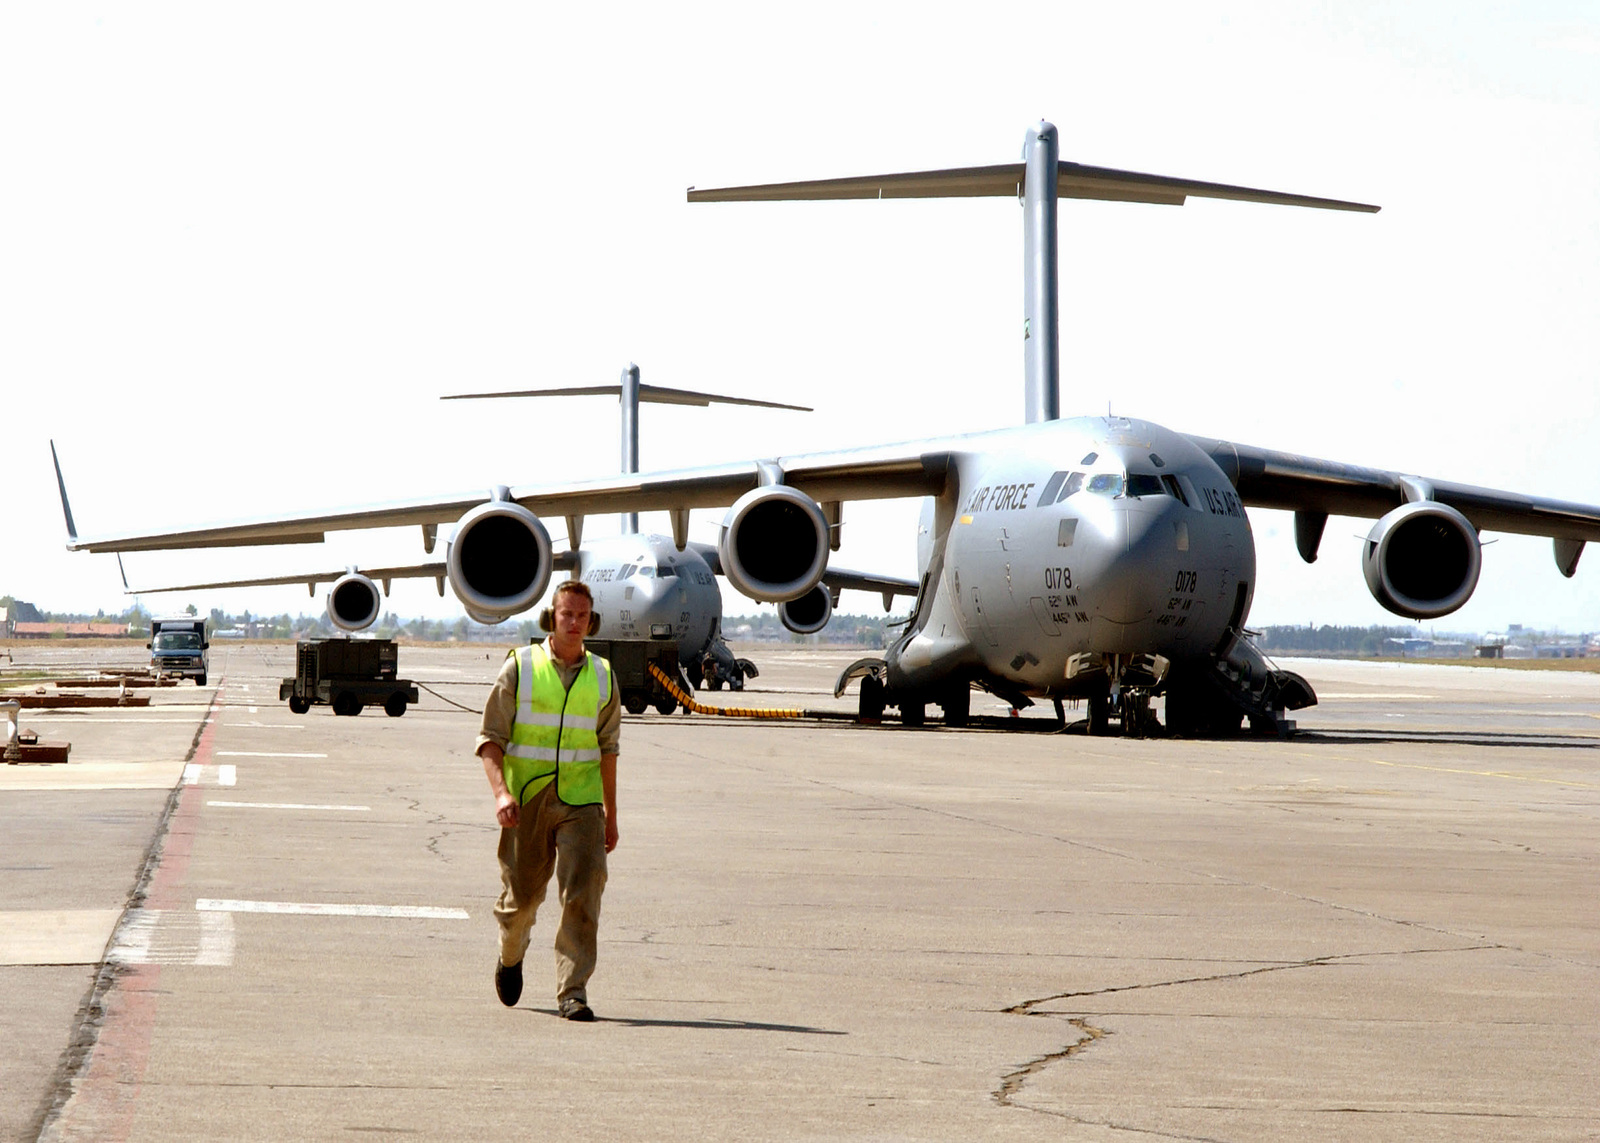 Against the backdrop of two US Air Force (USAF) C-17 cargo aircraft a Royal Air Force (RAF) flight technician walks on the flight line, in supporting Operation NORTHERN WATCH at Incirlik Air Base (AB), Turkey